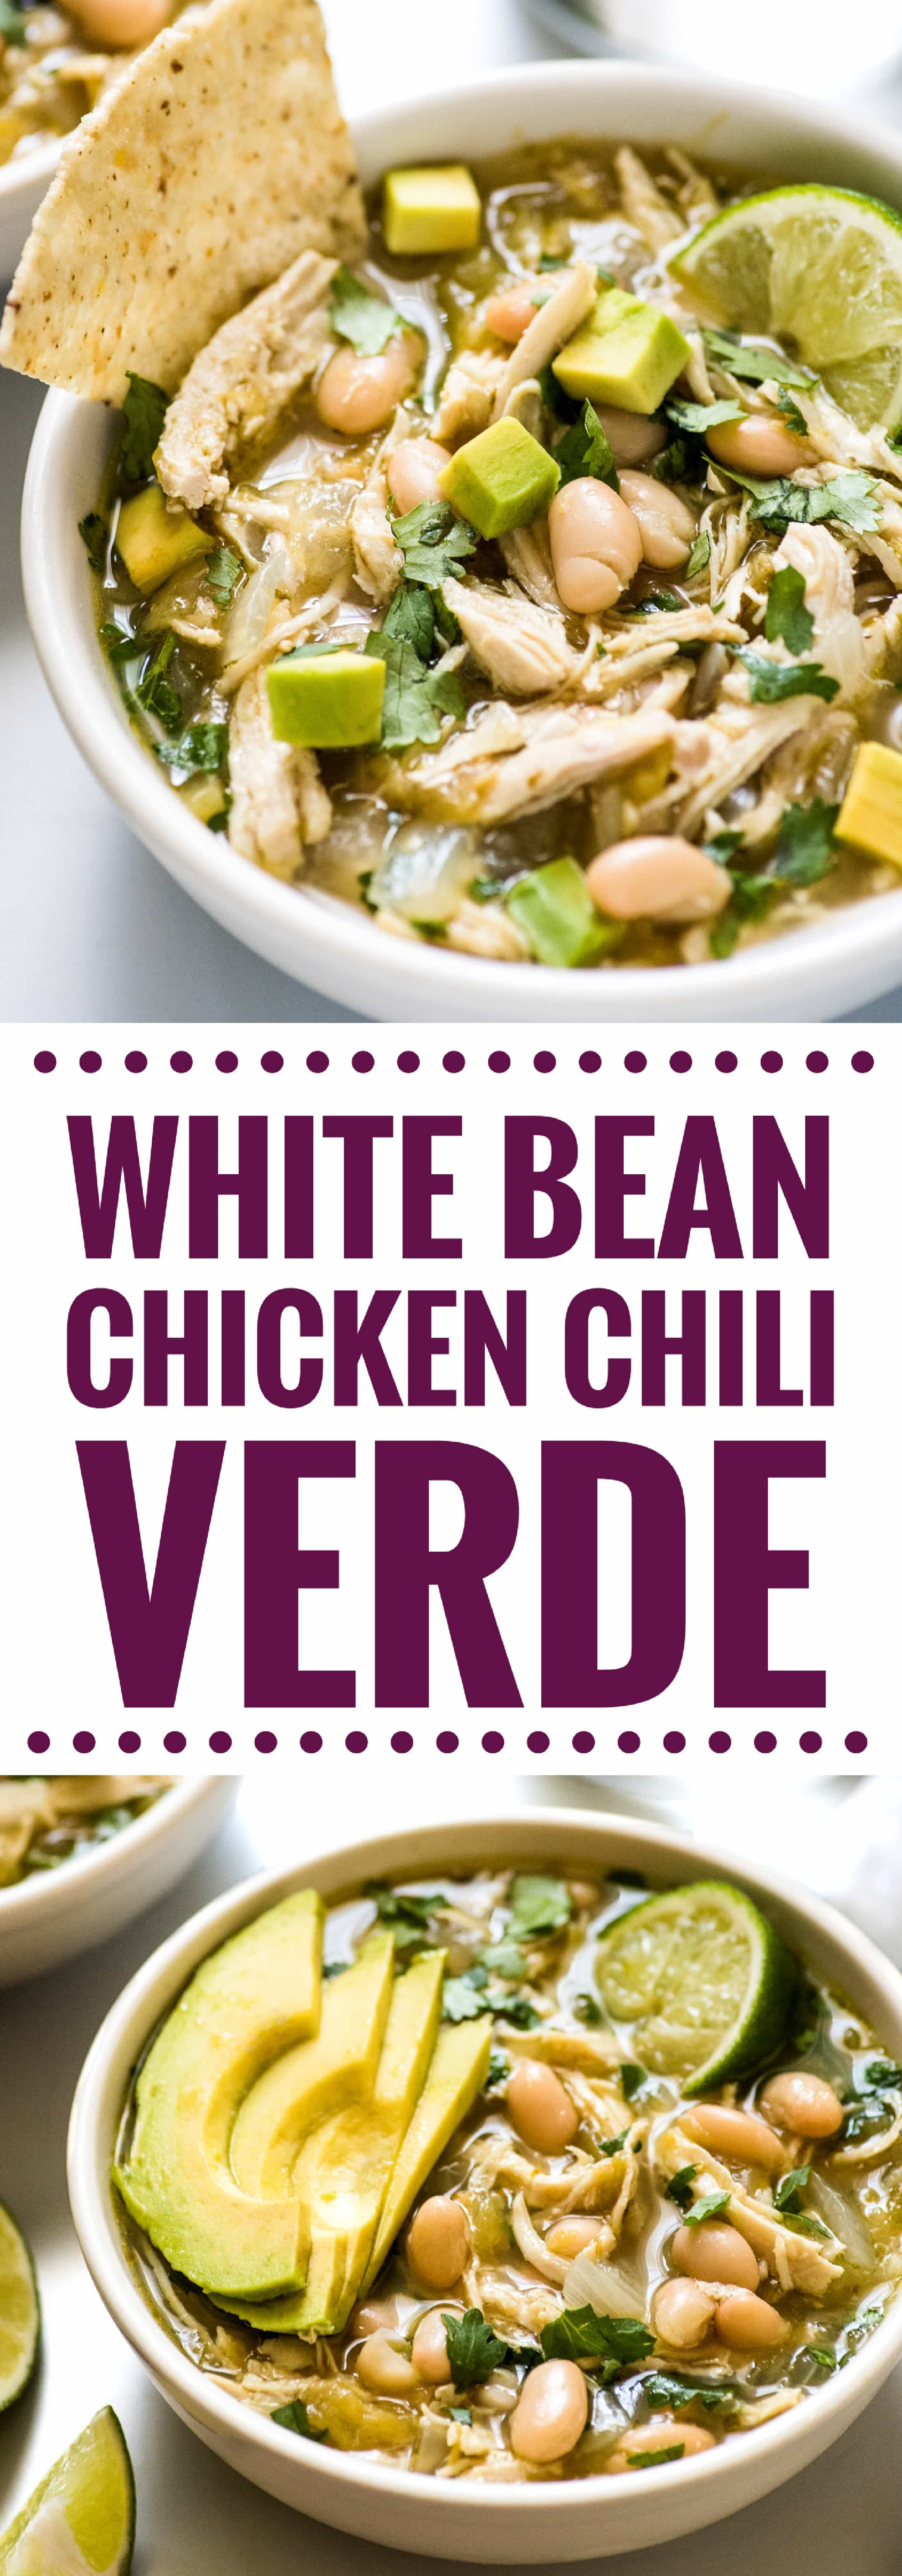 Green Chicken Chili Recipe Easy Healthy Isabel Eats Recipe Chicken Chili Verde Chicken Chili Recipe Easy Chili Recipe Easy